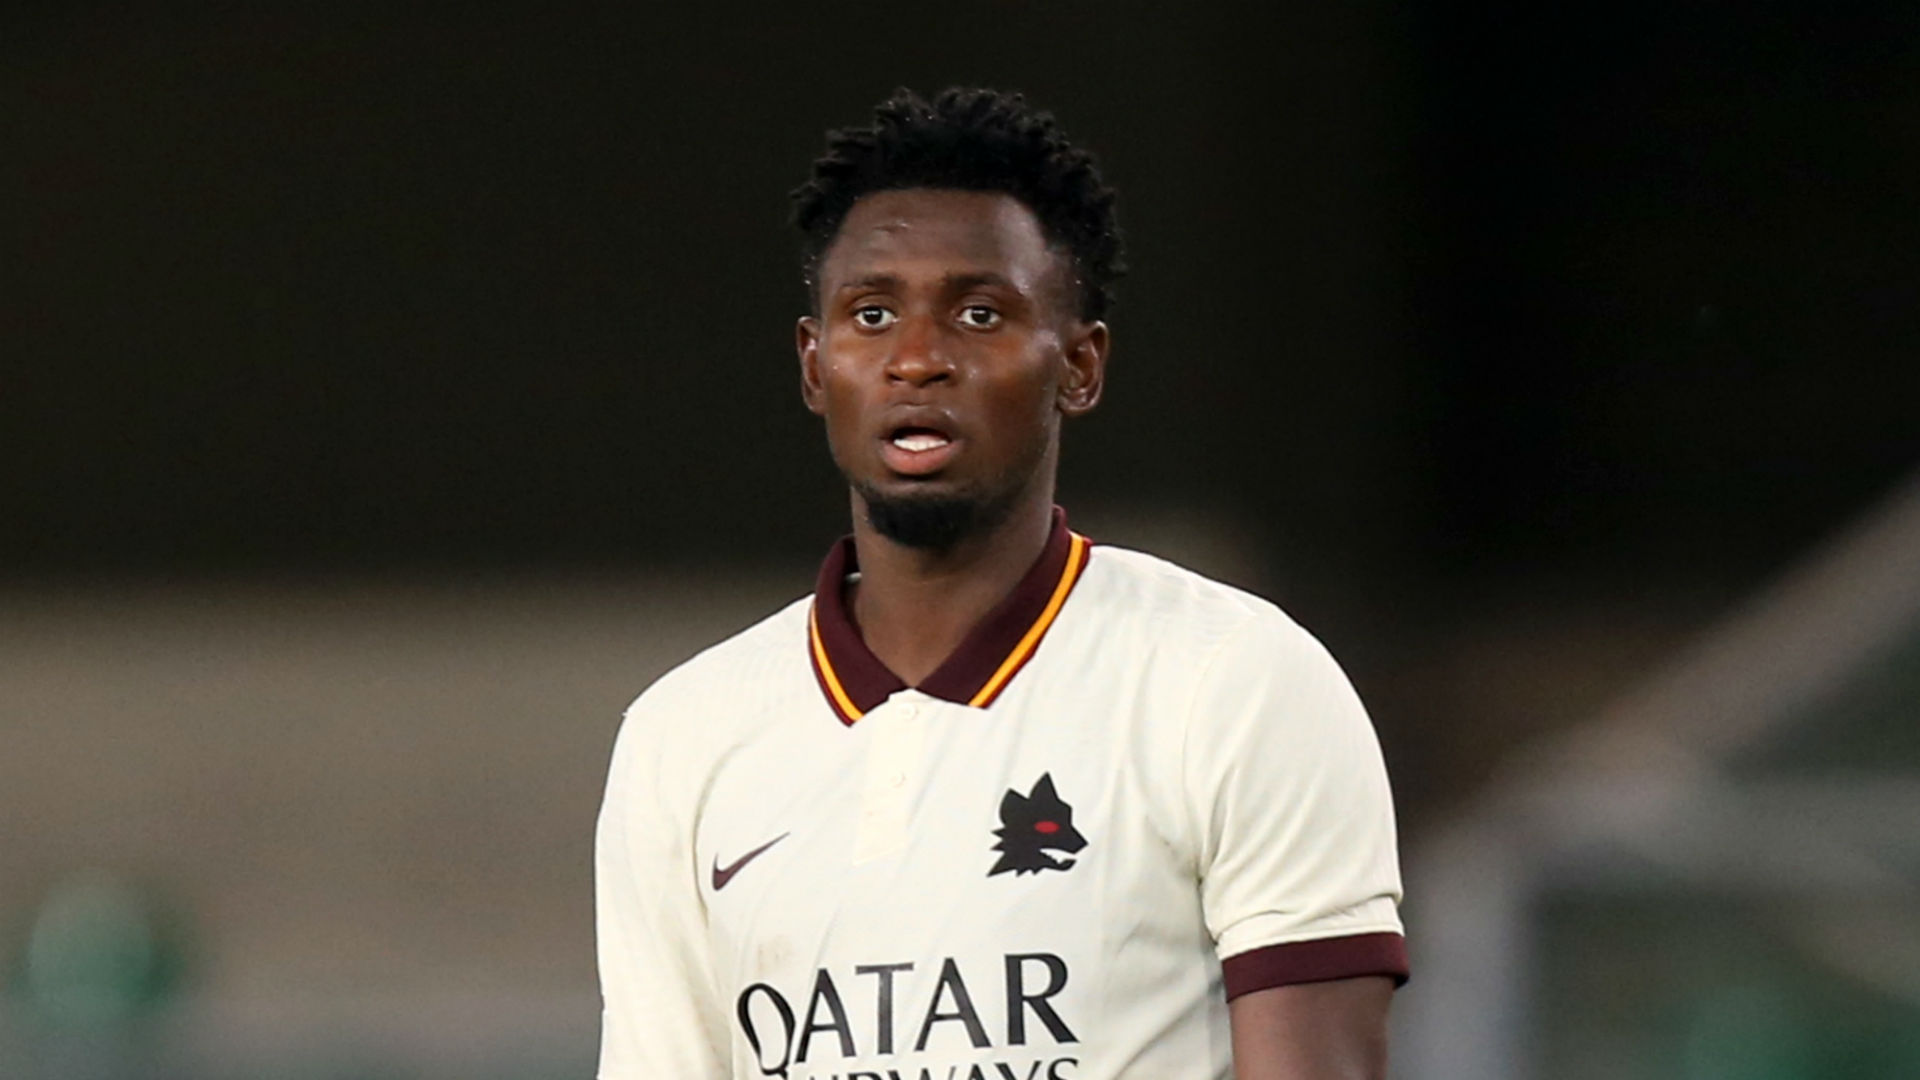 Roma handed 3-0 loss for fielding ineligible player